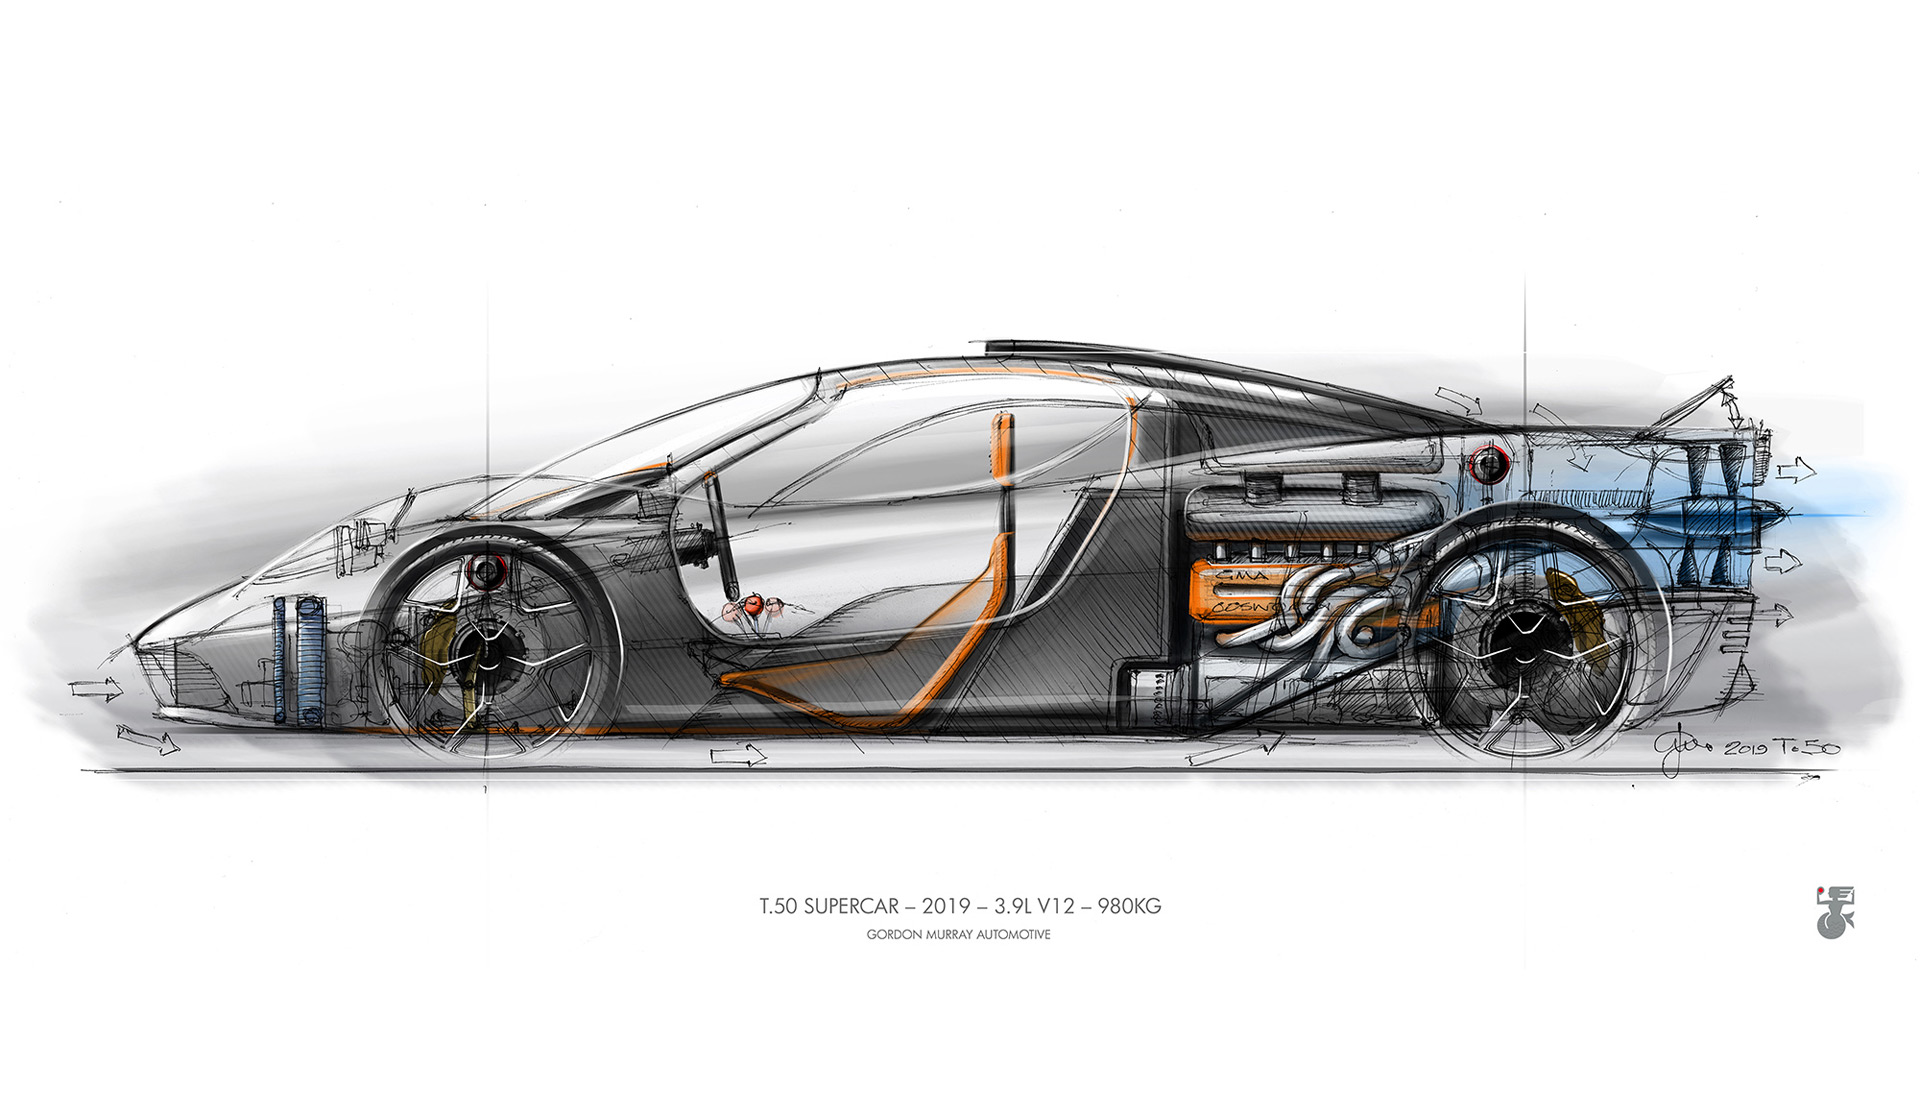 Canepa to represent Gordon Murray's T50 supercar in North America